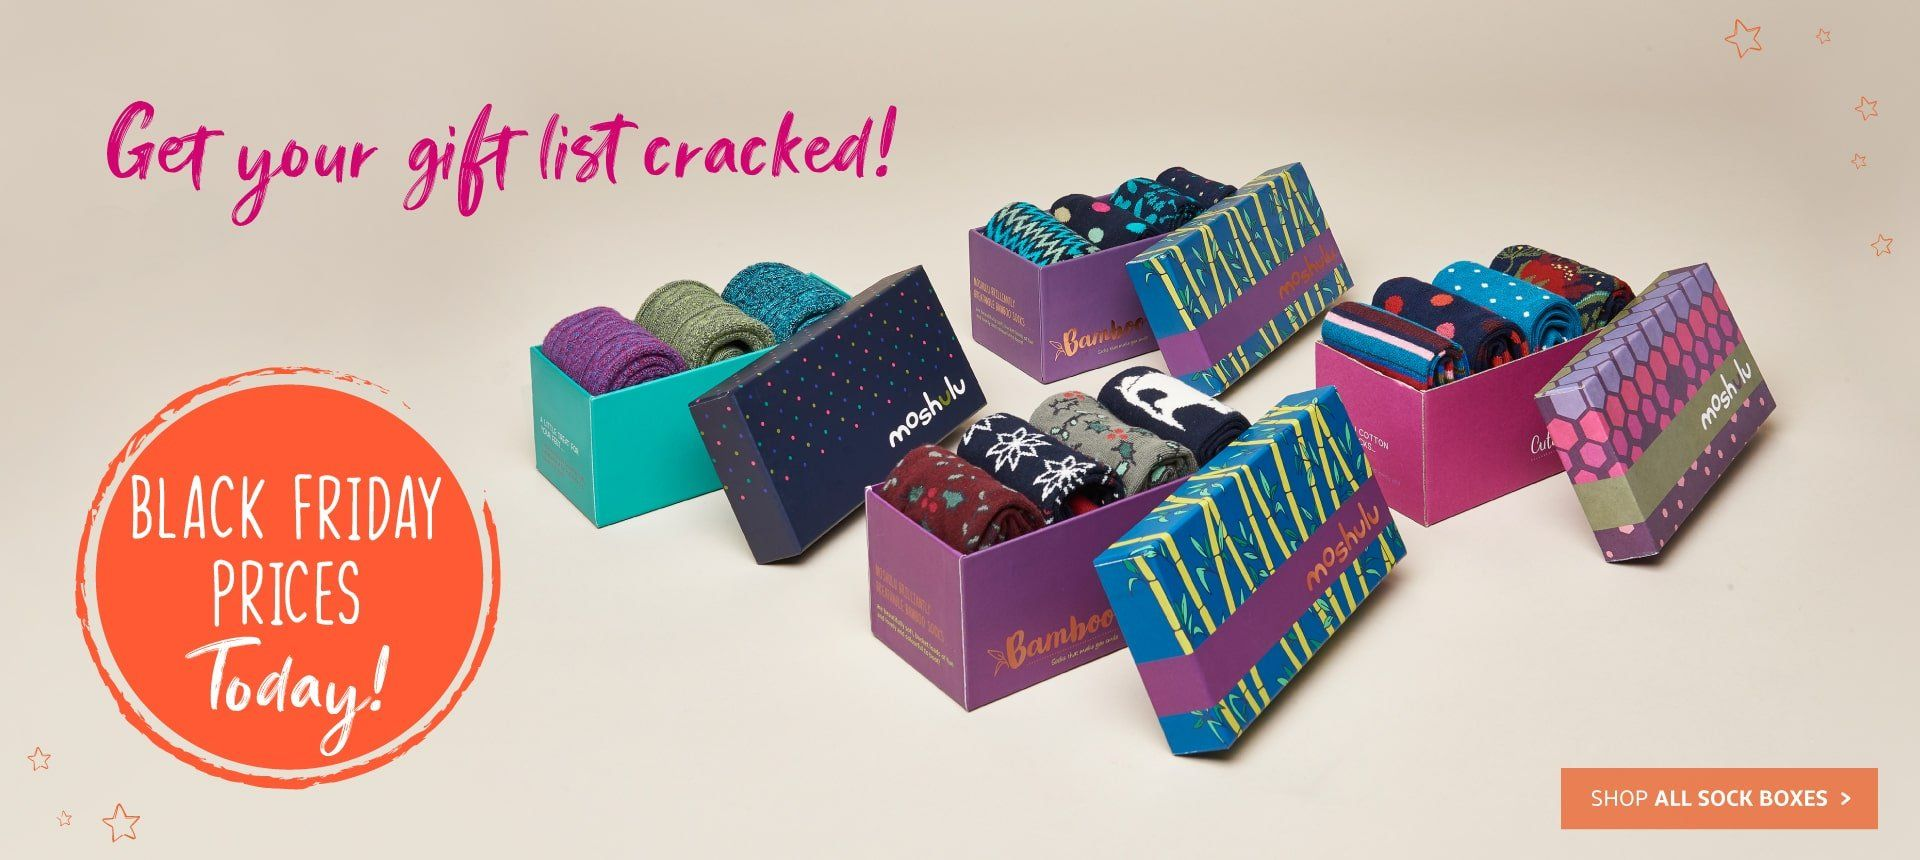 Get your gift list cracked!